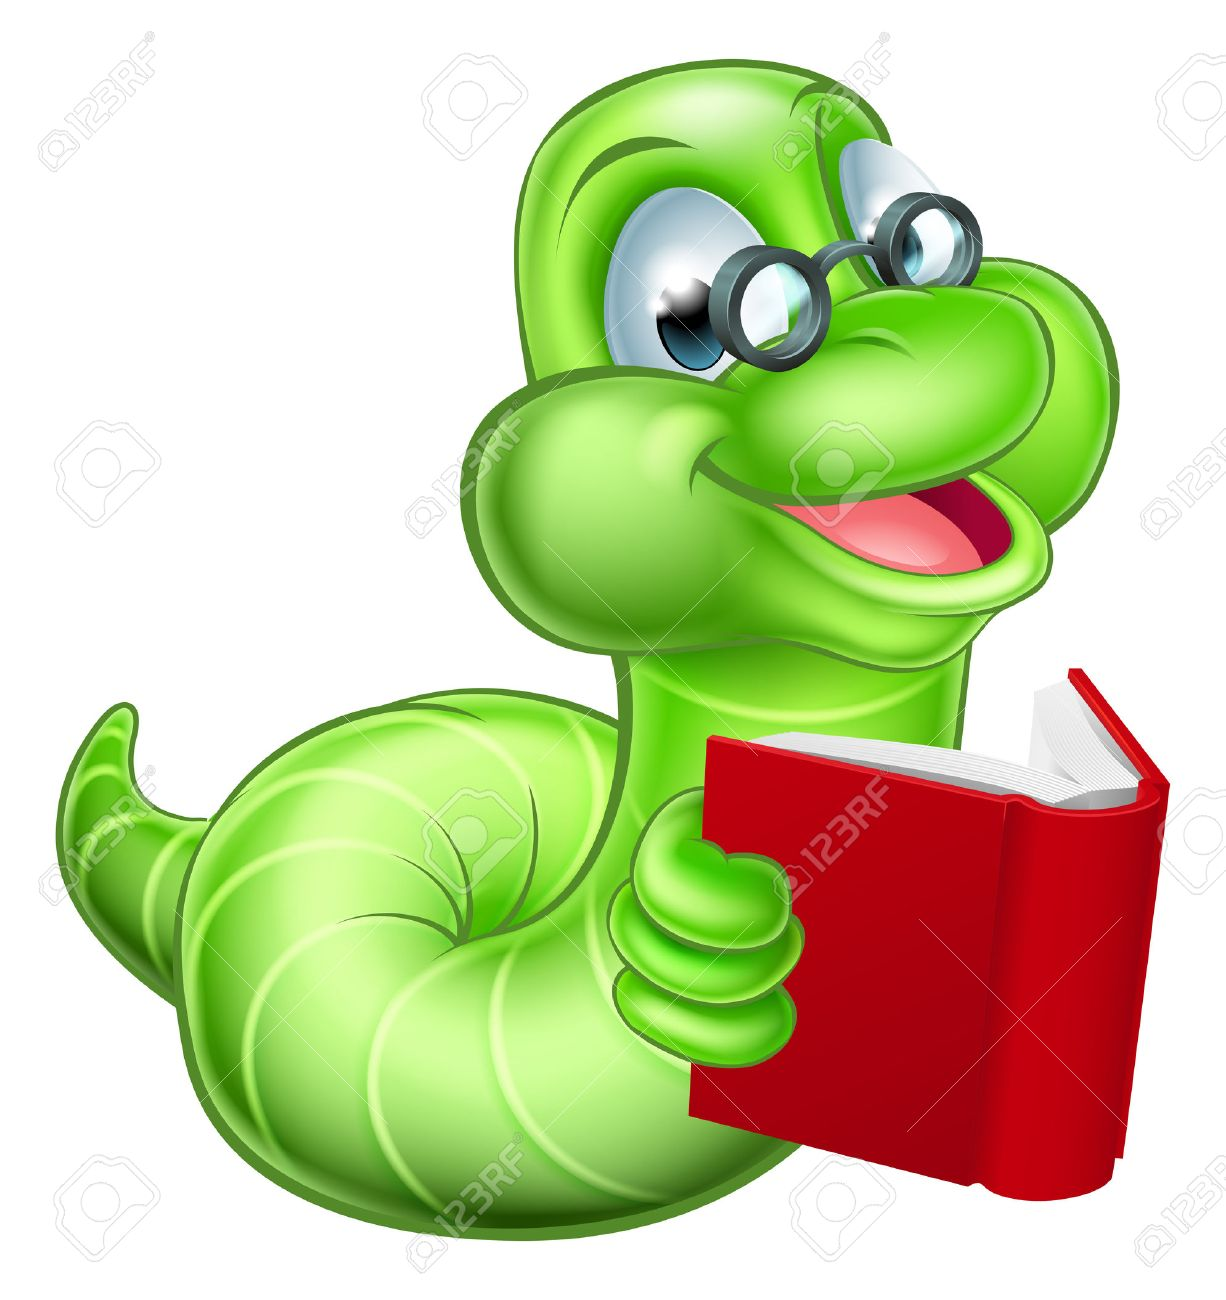 Cute smiling green cartoon caterpillar worm bookworm with glasses...